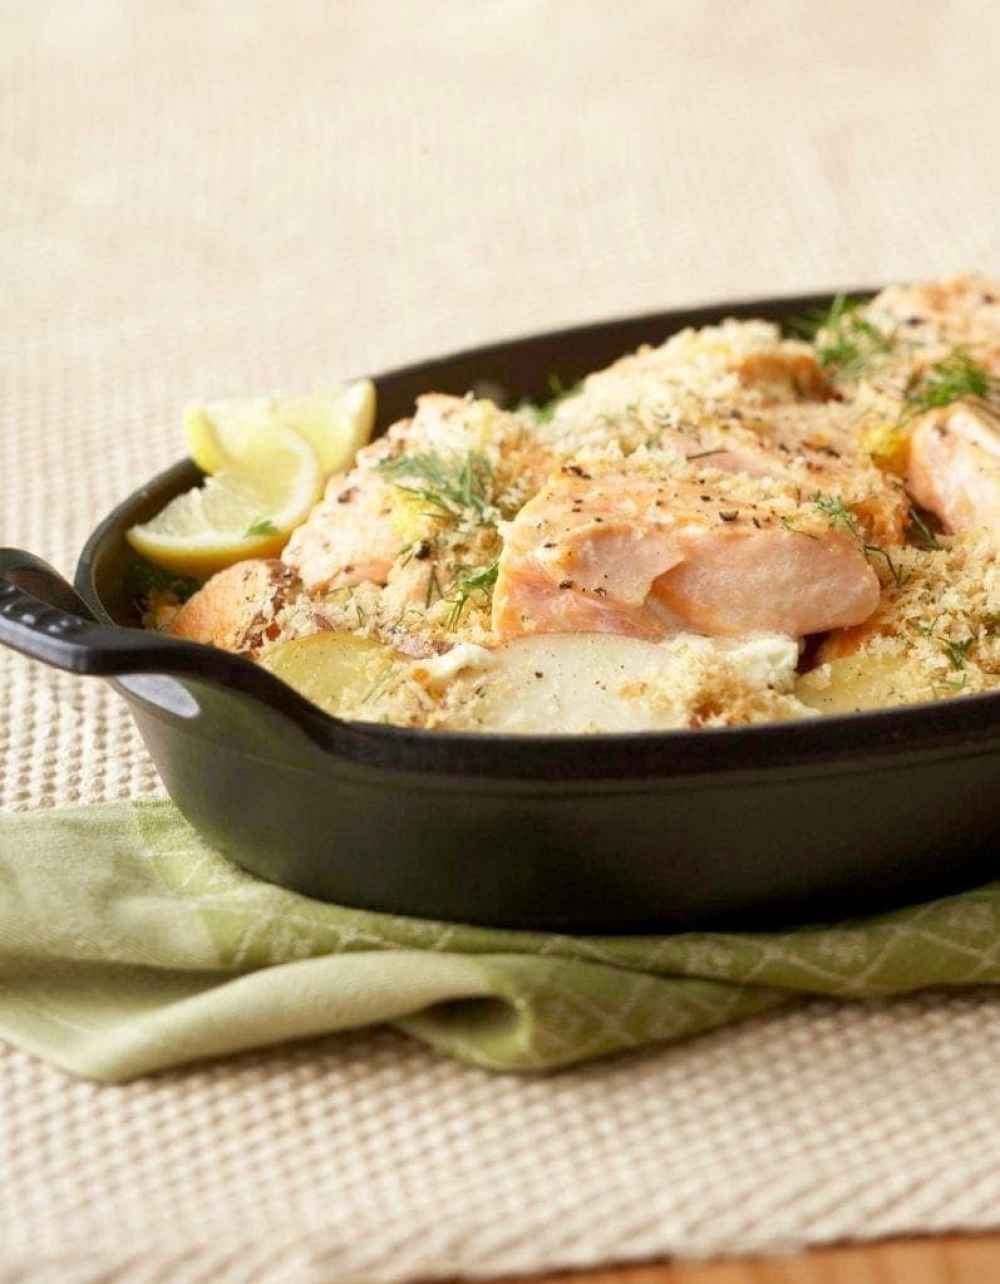 Easy Dinner Potato Salmon Bake is a delicious one dish meal